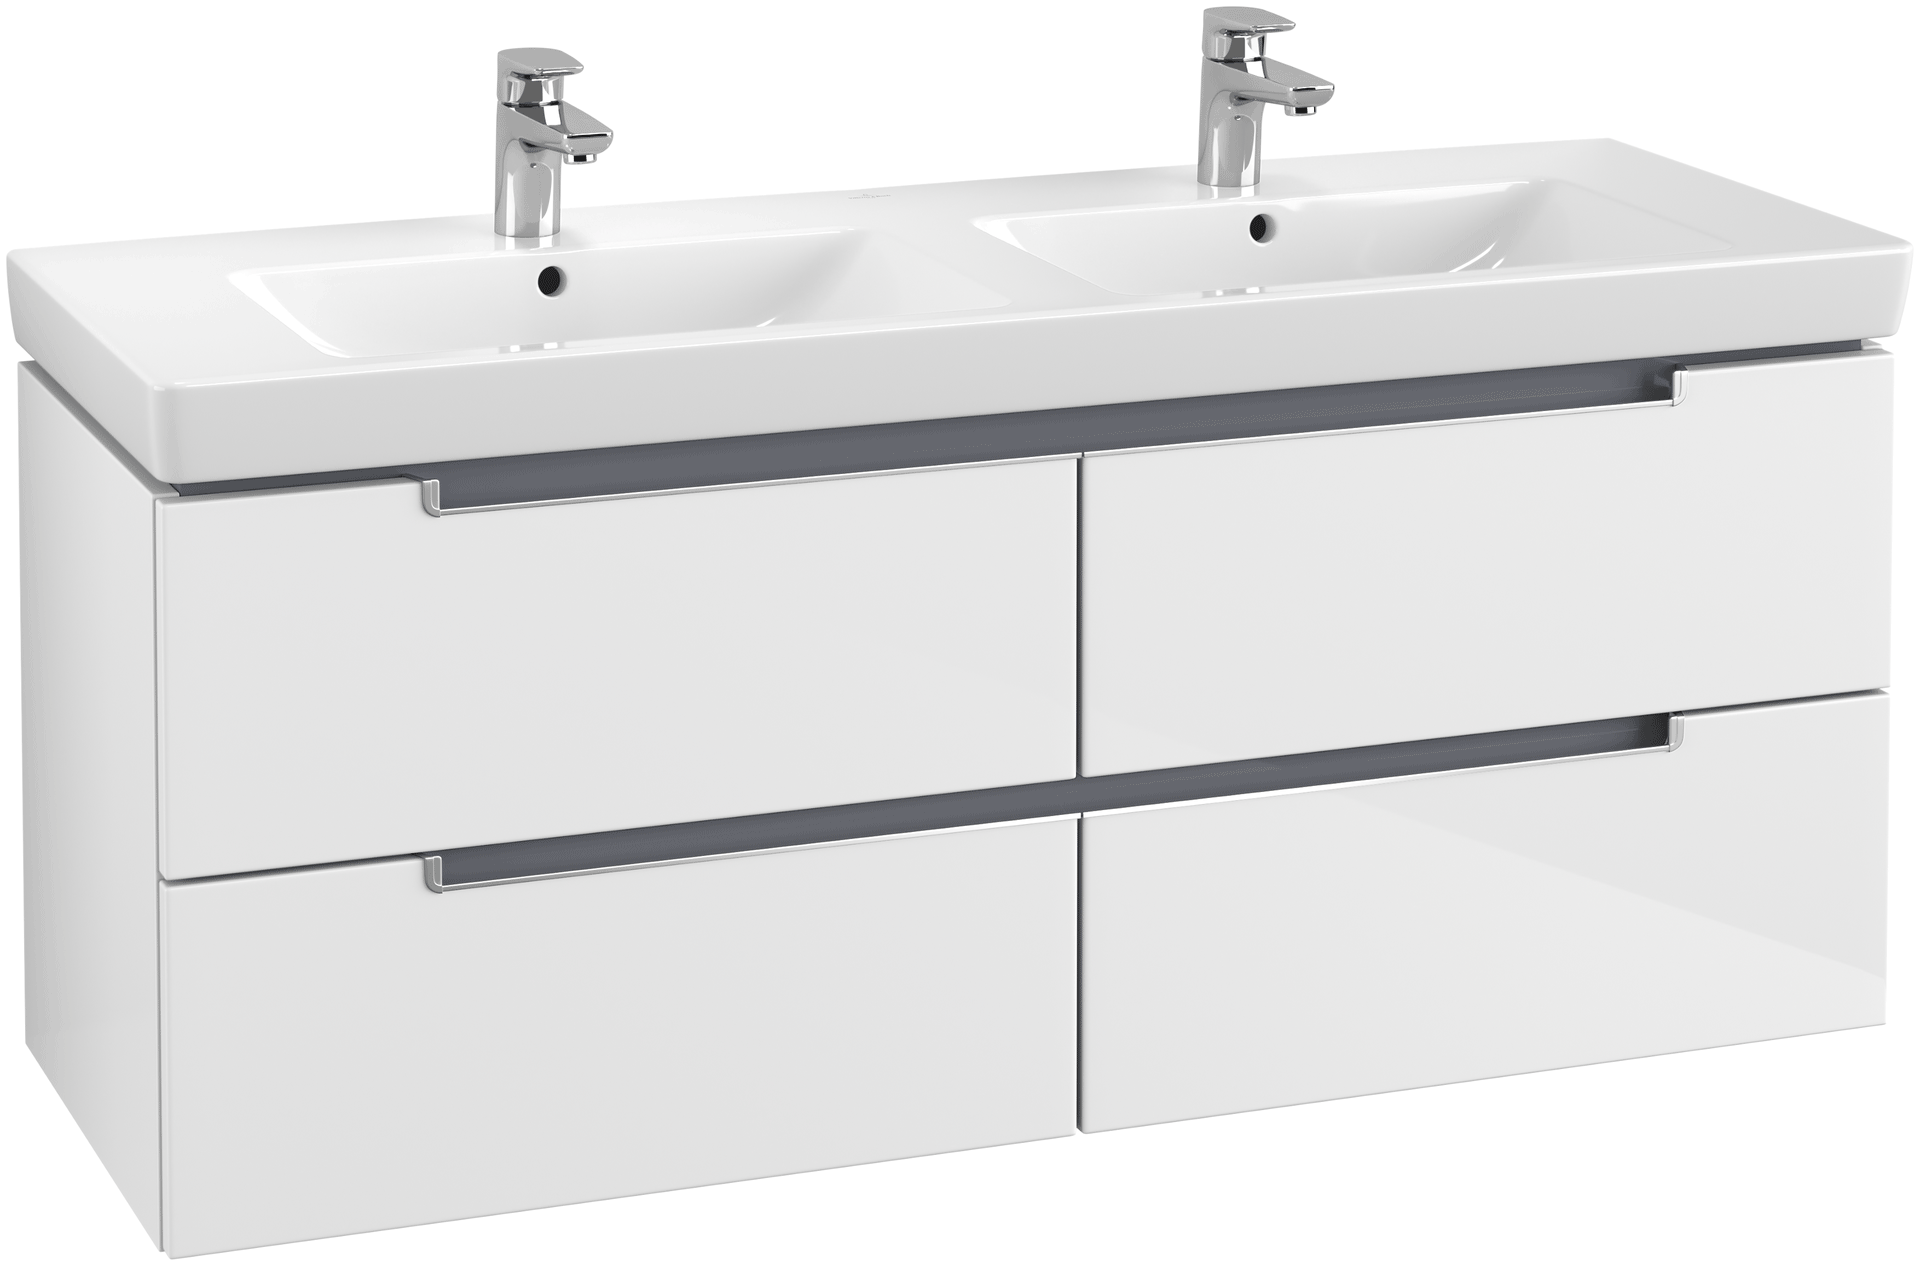 Villeroy Boch Subway 2 0 Vanity Unit 1287 With 4 Drawers Glossy White Xtwostore